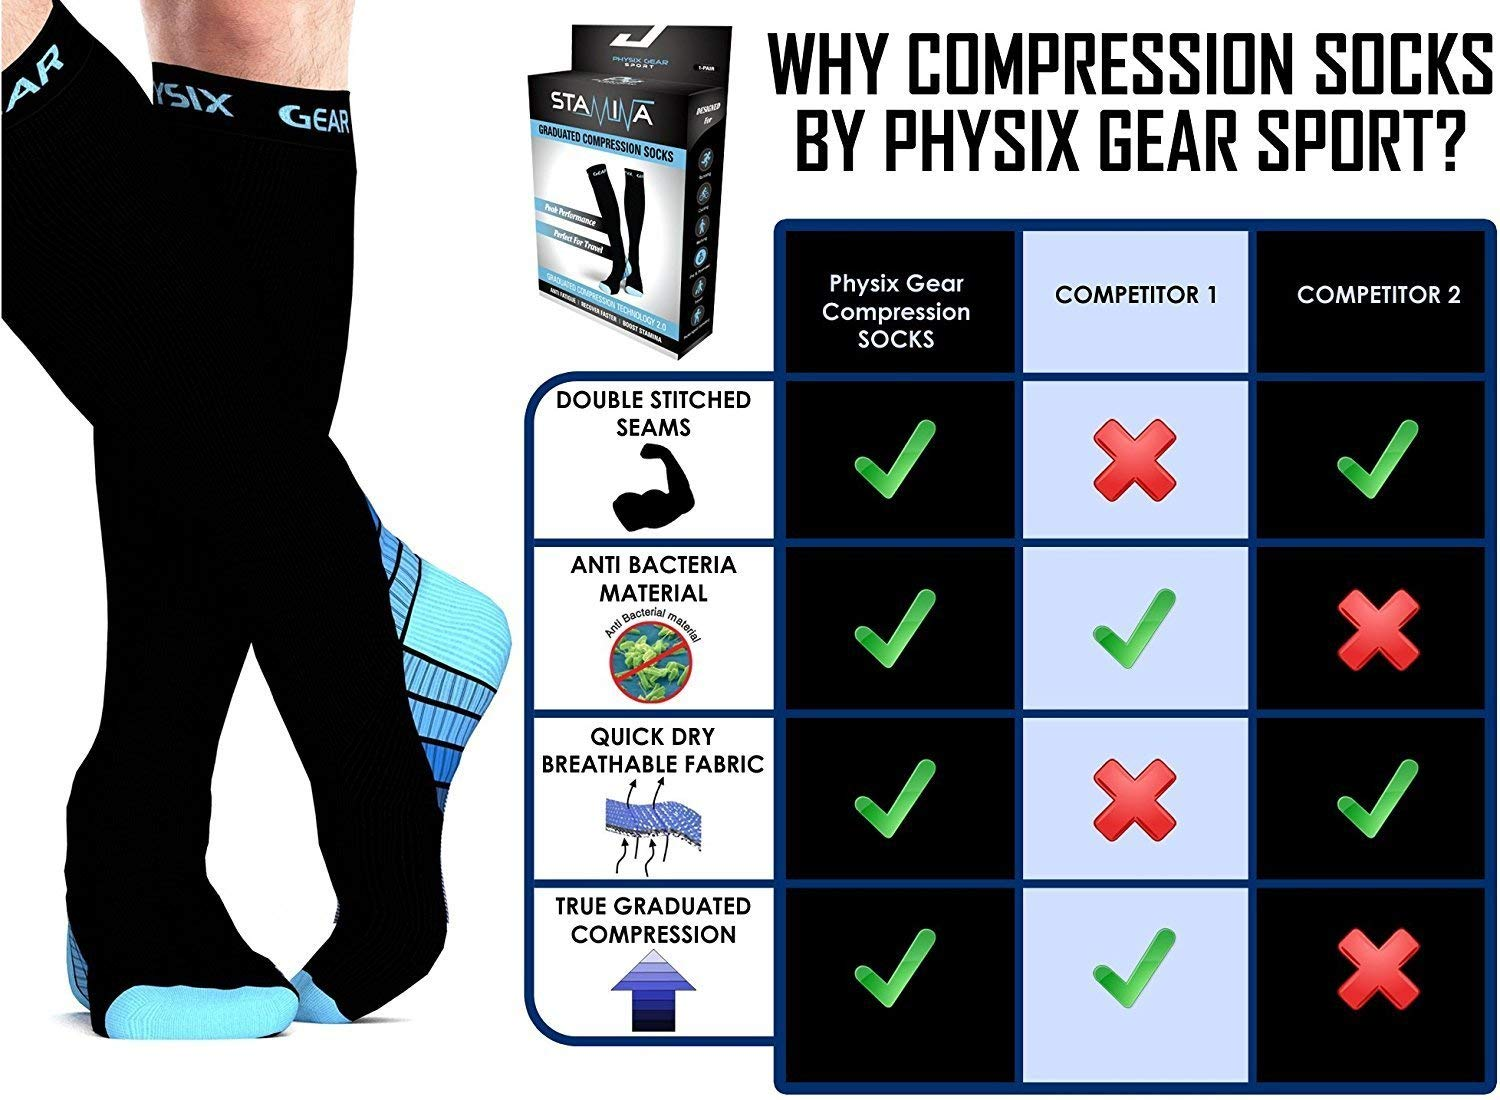 3 Pack Compression Socks for Men & Women 20-30 mmhg, Best Graduated Athletic Fit for Running Nurses Shin Splints Flight Travel & Maternity Pregnancy - Boost Stamina Circulation & Recovery BLU LXL by Physix Gear Sport (Image #3)